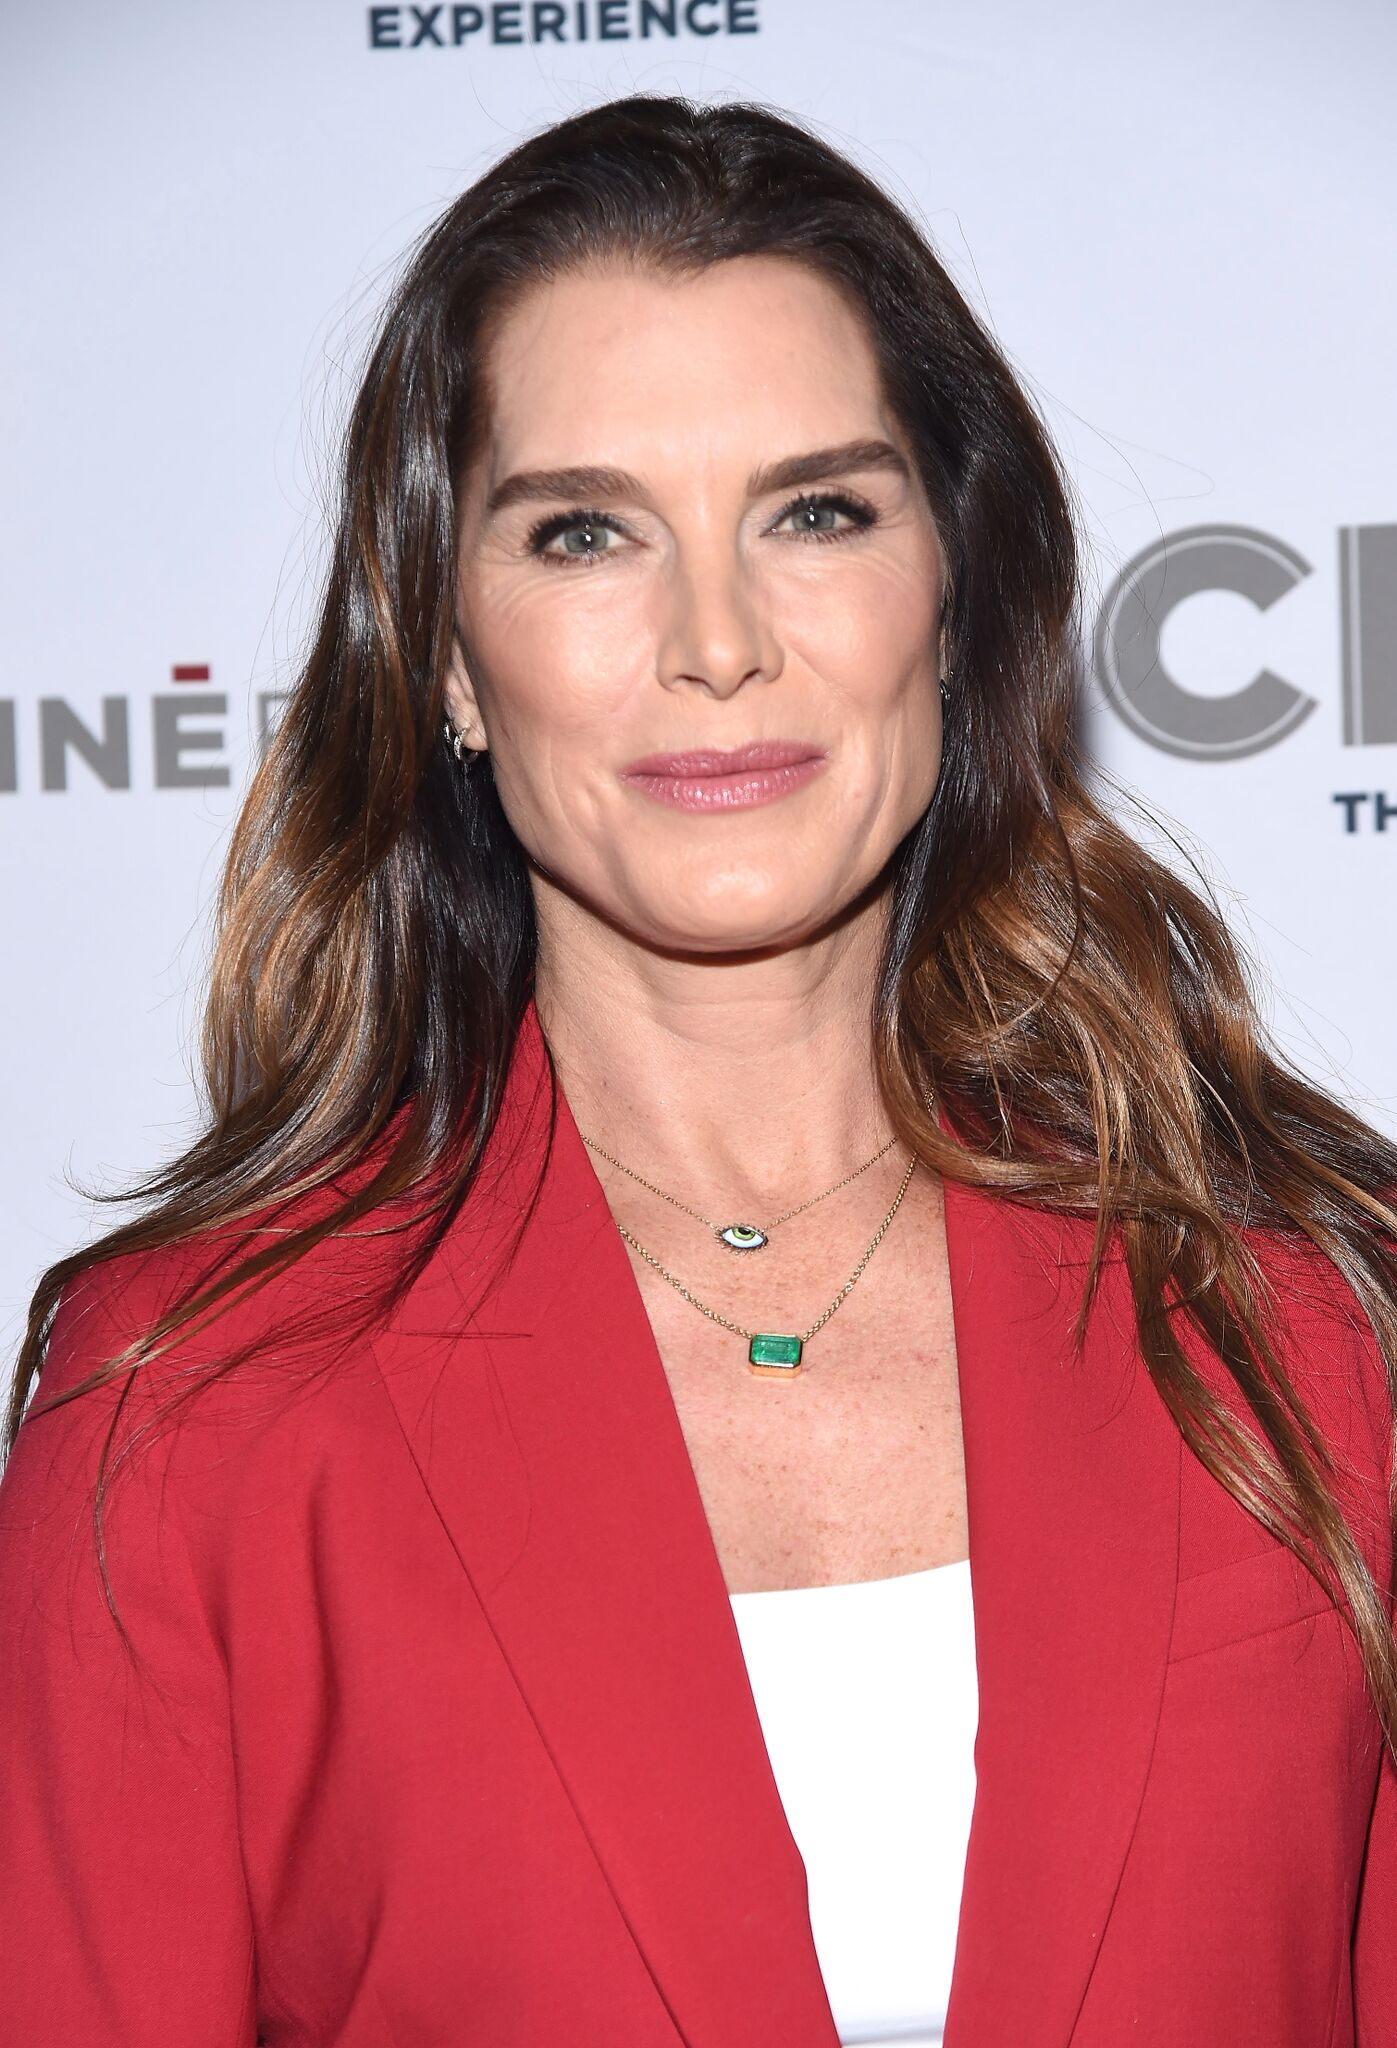 Brooke Shields attends the opening of CMX CineBistro with special screenings of 'Blackkklansman', 'City Lights' and 'Pretty Baby' at CMX CineBistro | Getty Images